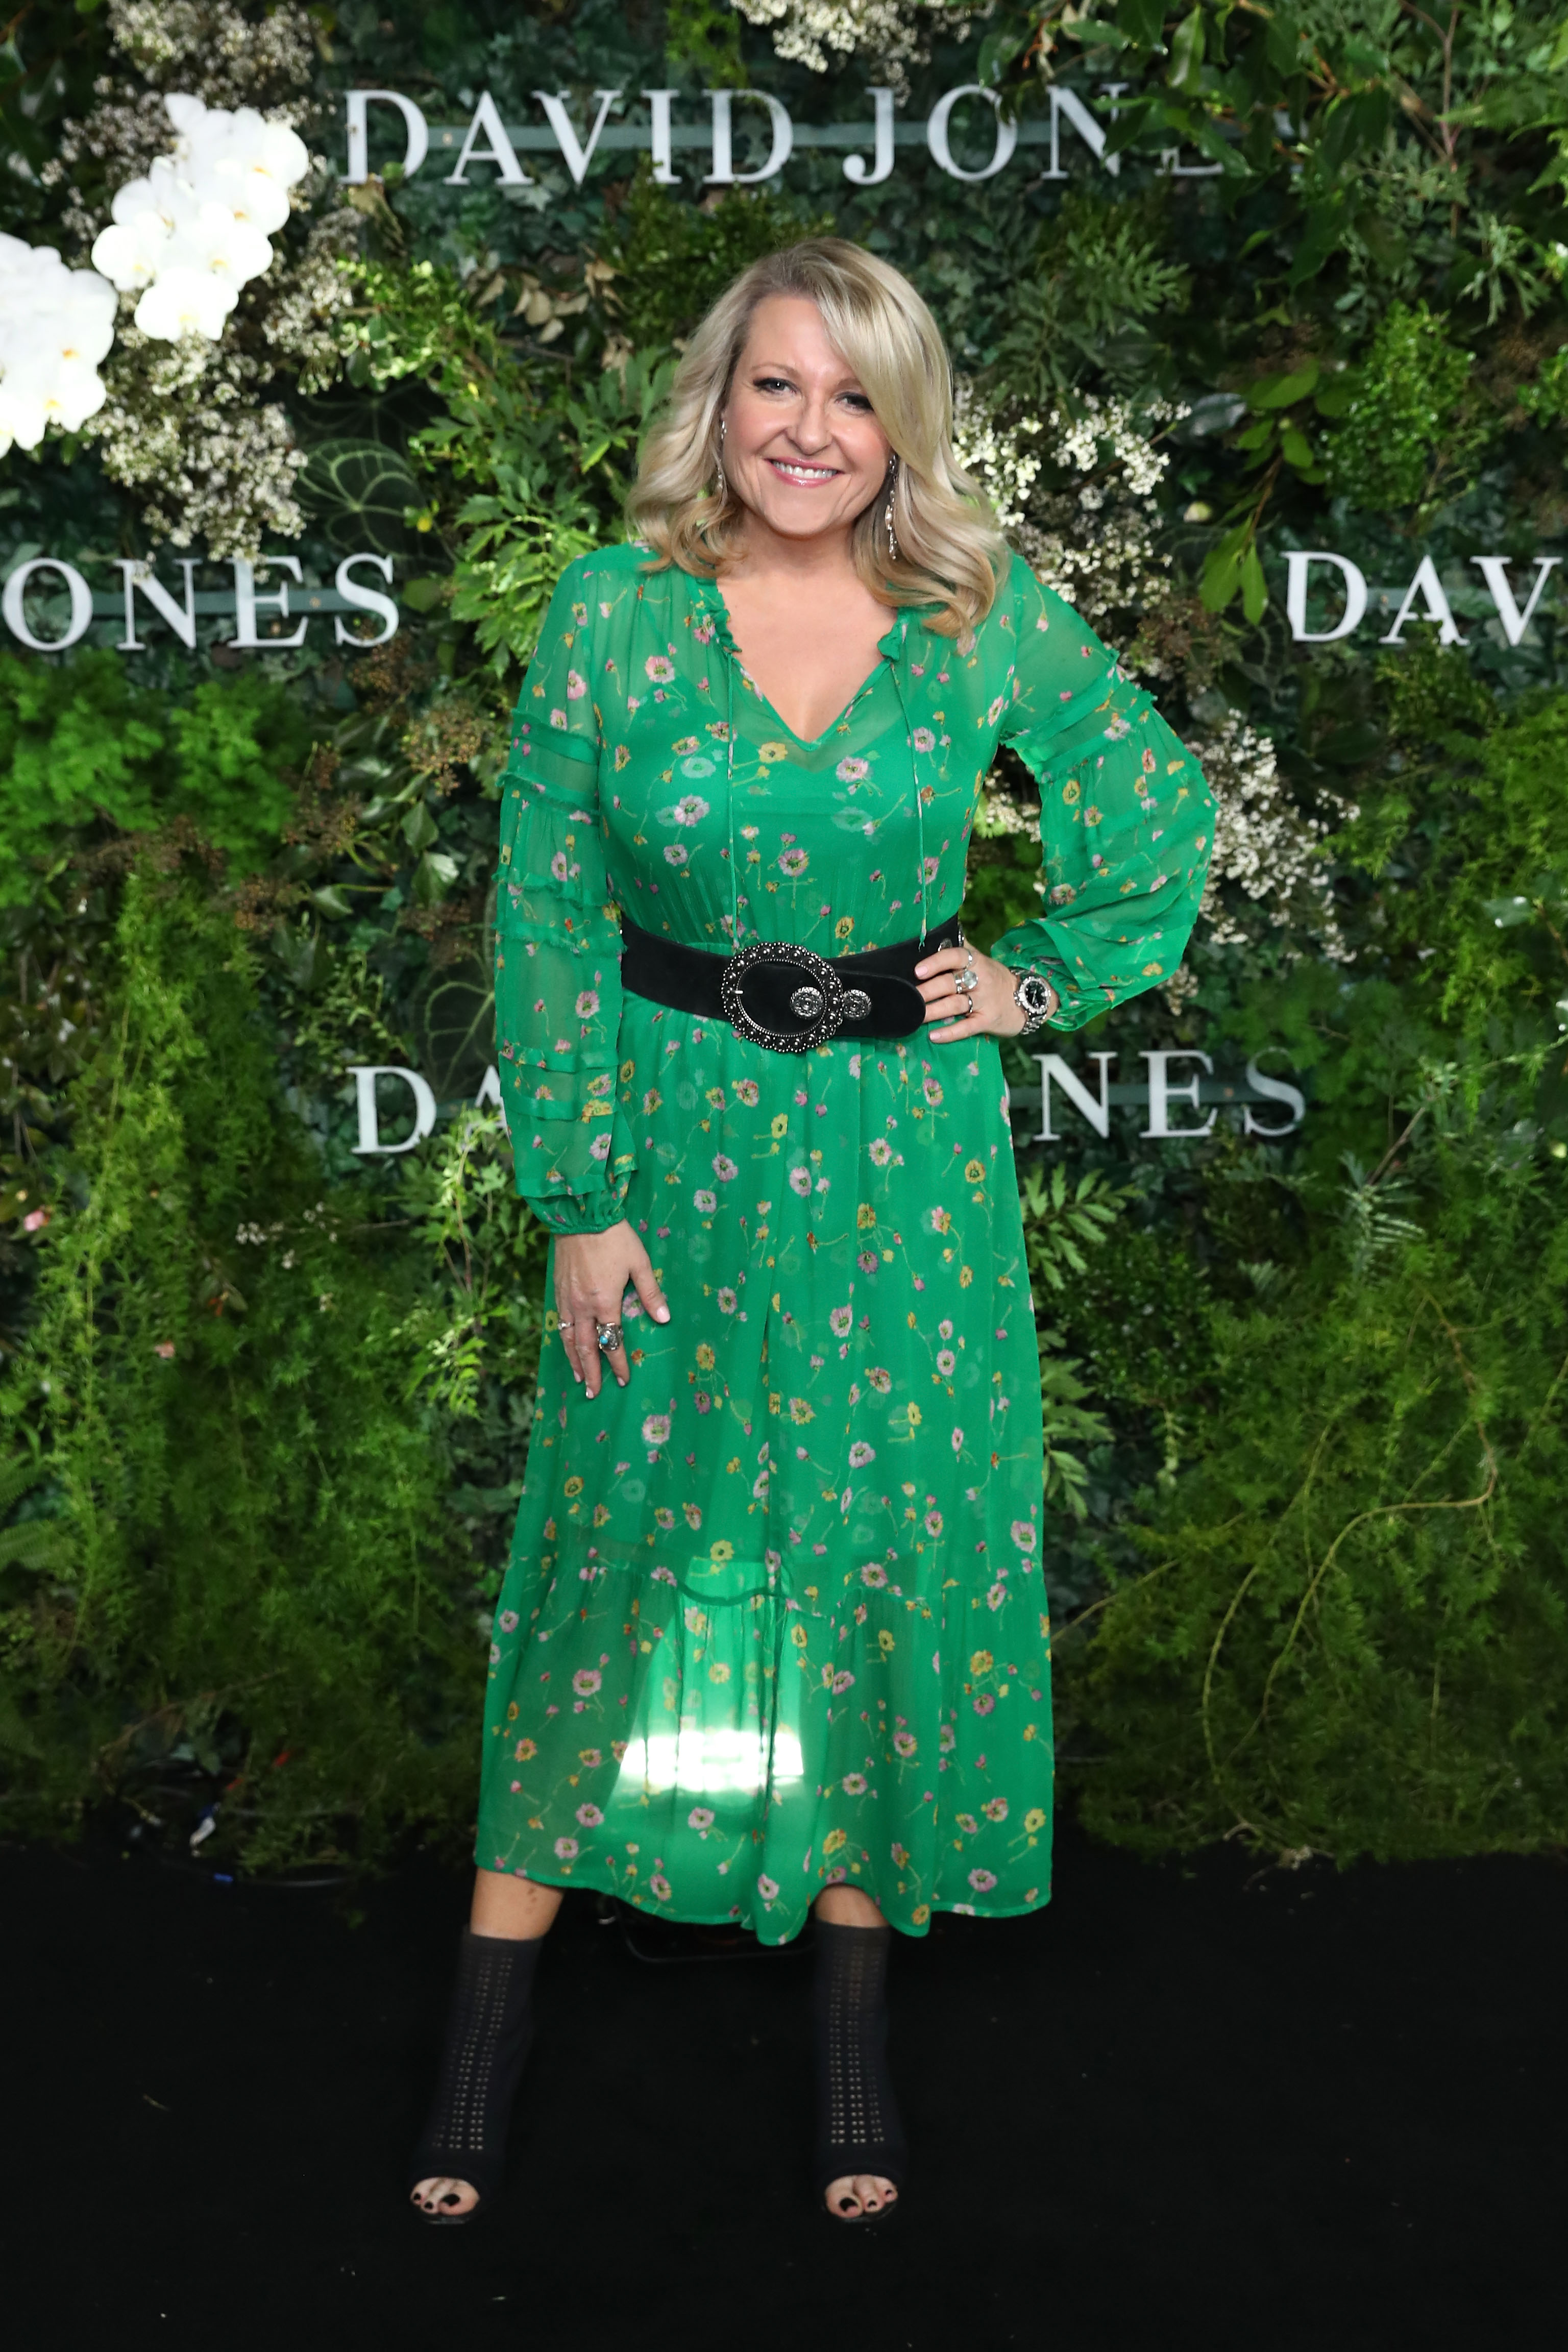 SYDNEY, AUSTRALIA - AUGUST 08: Angela Bishop attends the David Jones Spring Summer 18 Collections Launch at Fox Studios on August 8, 2018 in Sydney, Australia.  (Photo by Mark Metcalfe/Getty Images for David Jones) *** Local Caption *** Angela Bishop